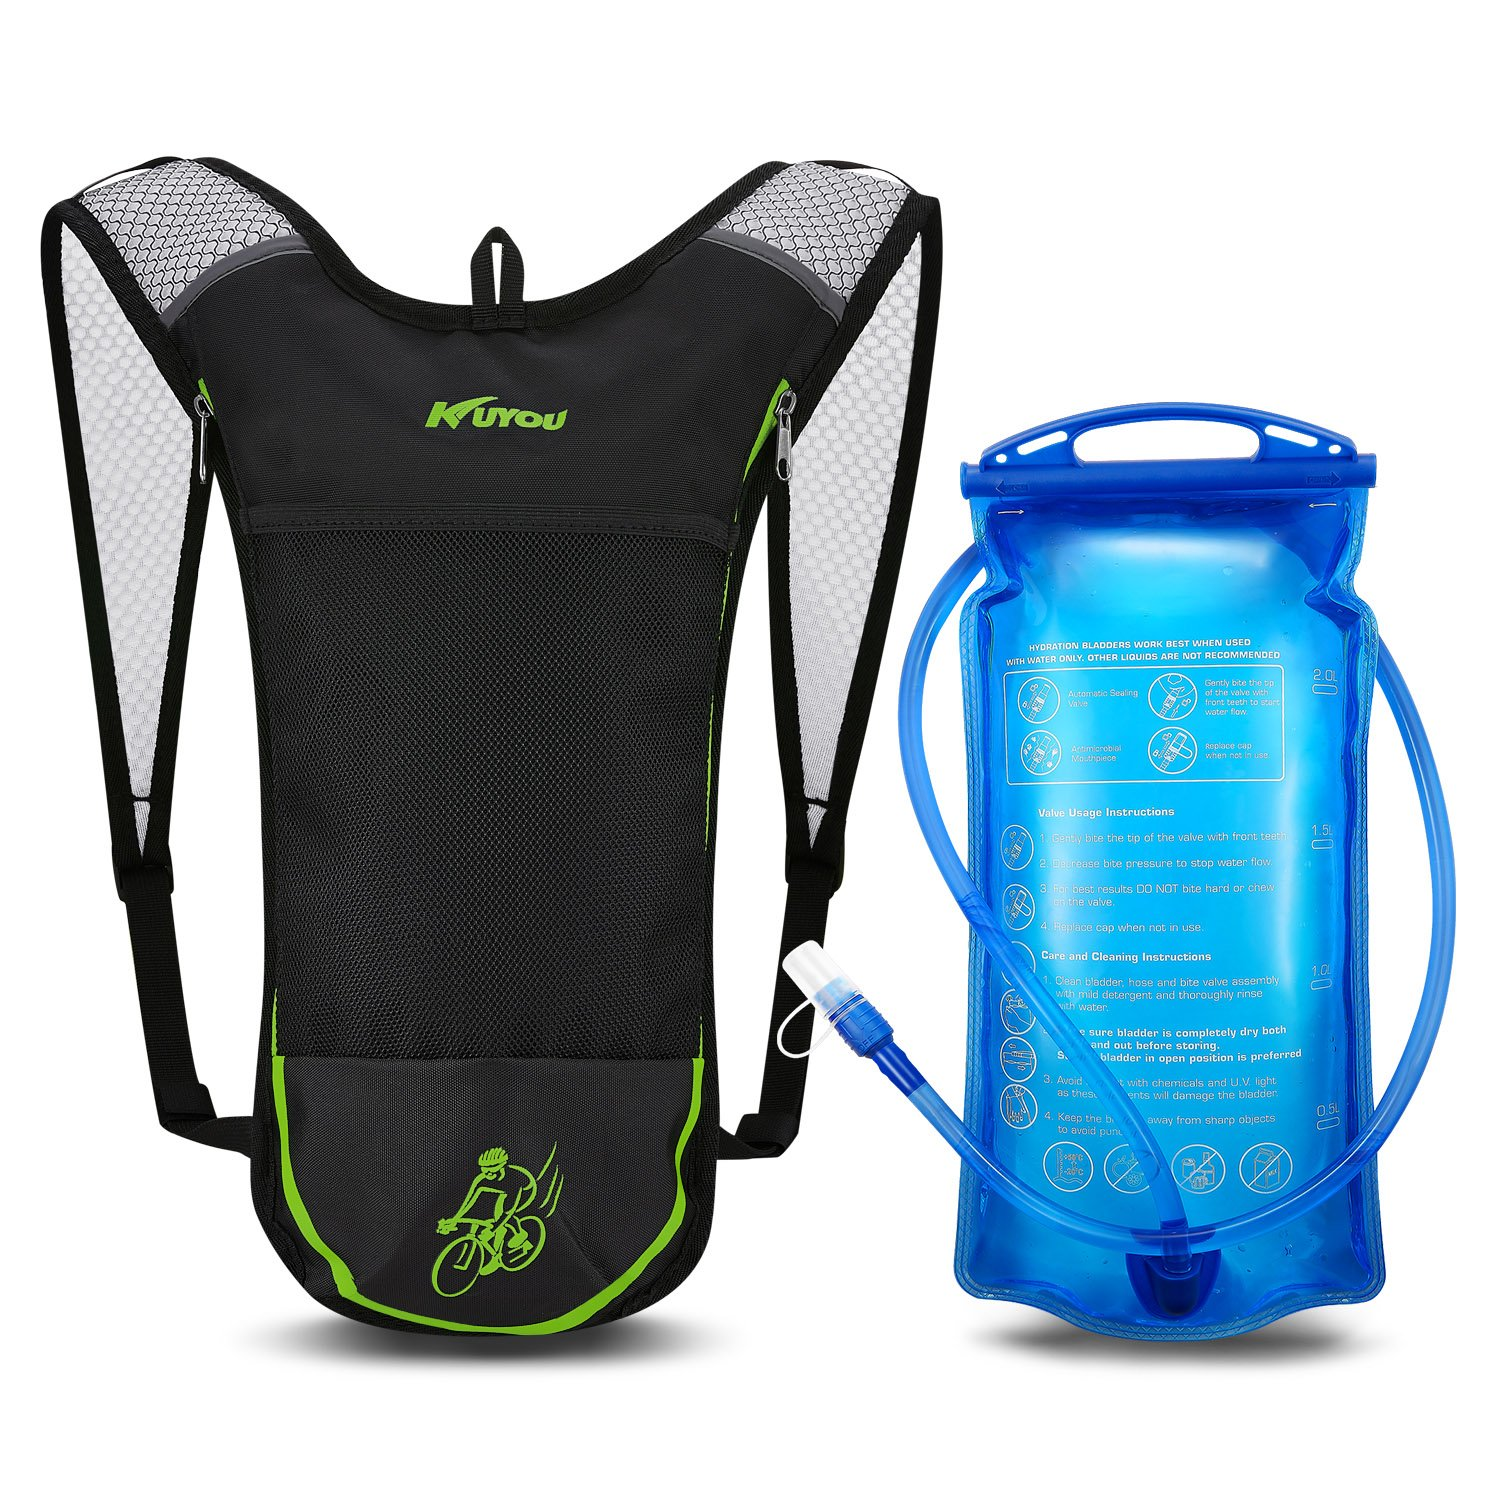 KUYOU Hydration Pack,Hydration Backpack 2L Hydration Bladder Running, Hiking, Cycling, Camping